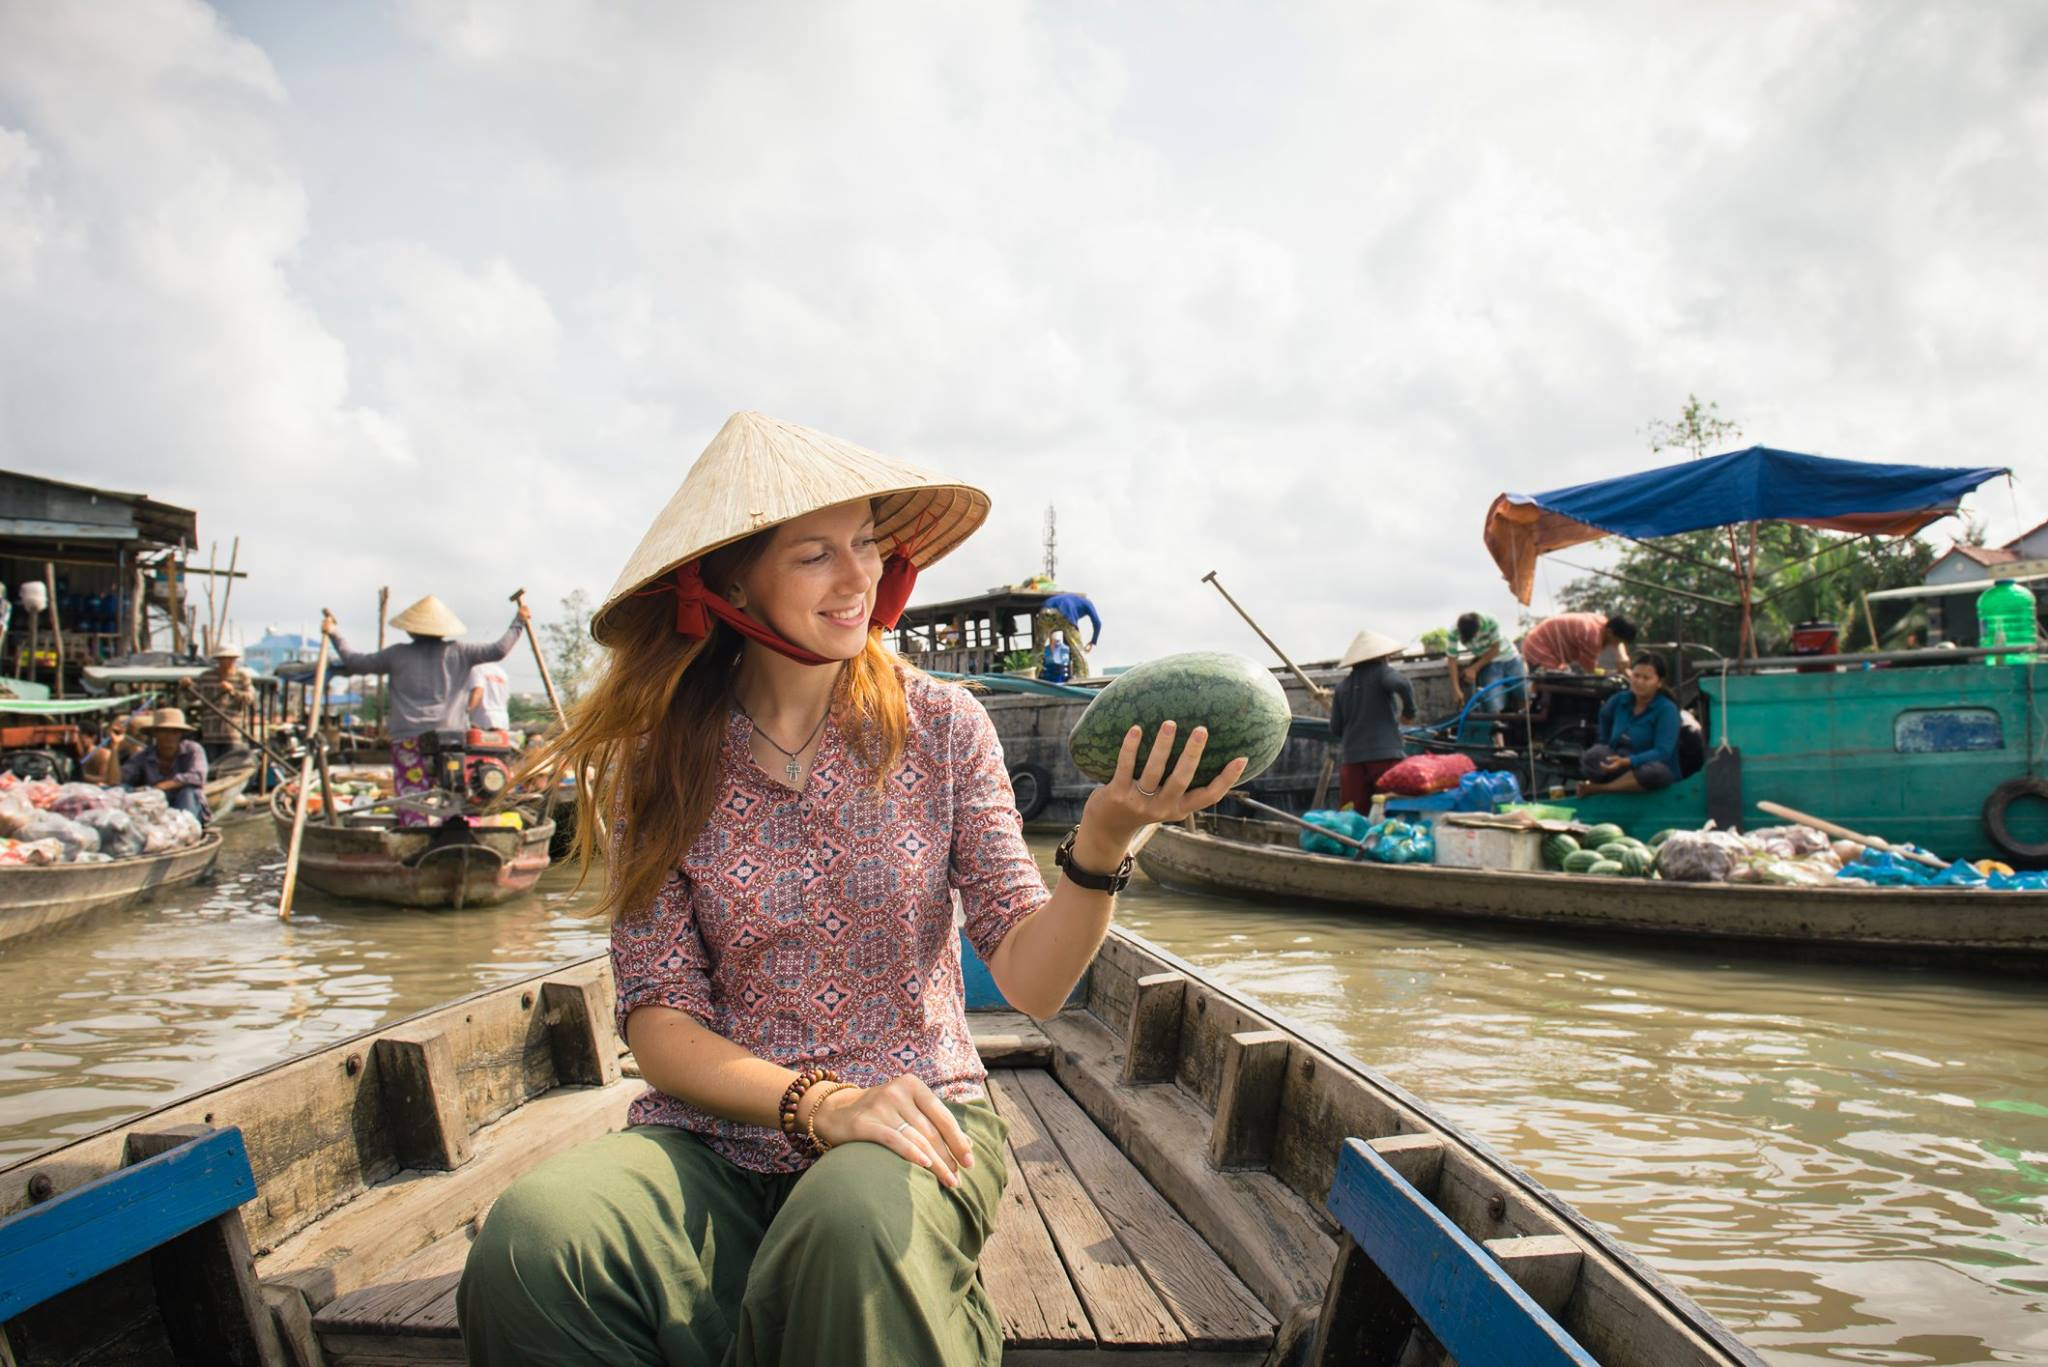 The bustling trading scene of Cai Rang floating market